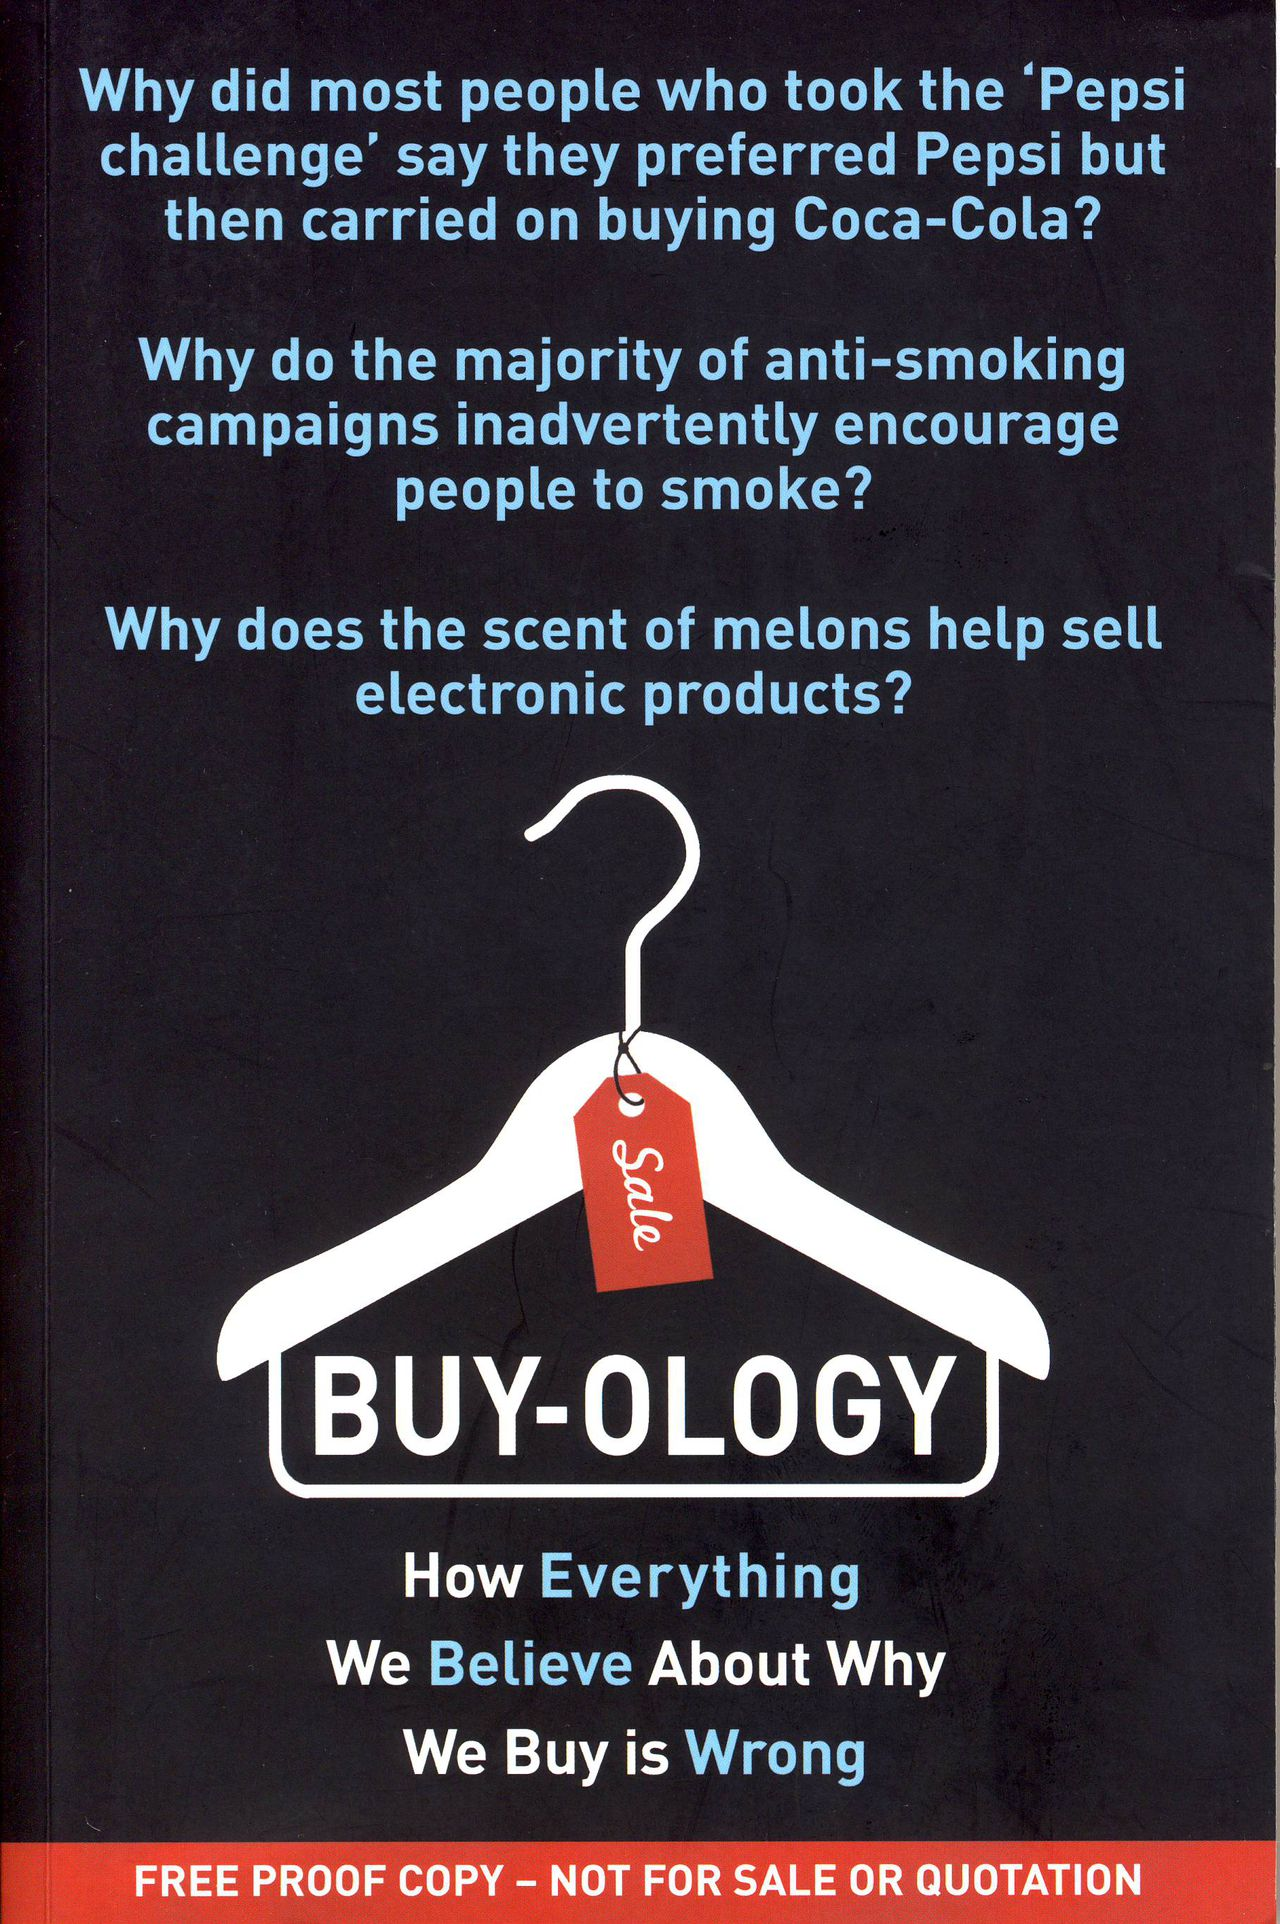 Buy-ology, How Everything We Believe About Why We Buy is Wrong. Auteur: Martin Lindstrom Random House Business Books, Londen 2008. 231 pag. 19,95 euro